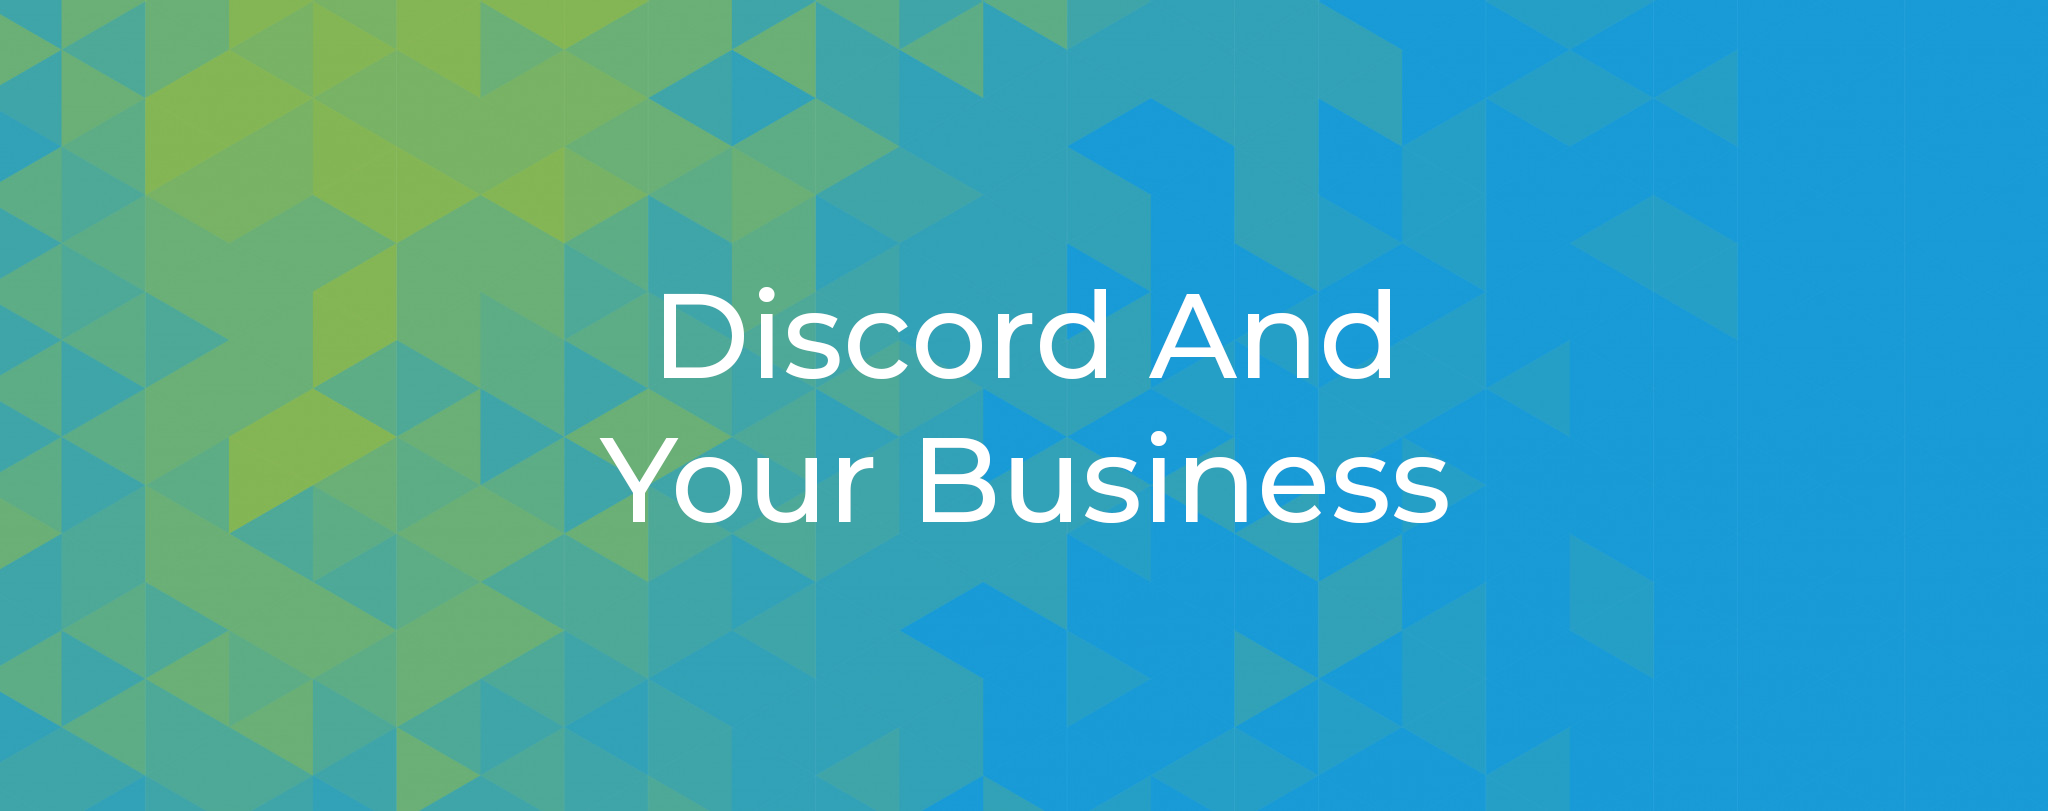 Discord And Your Business